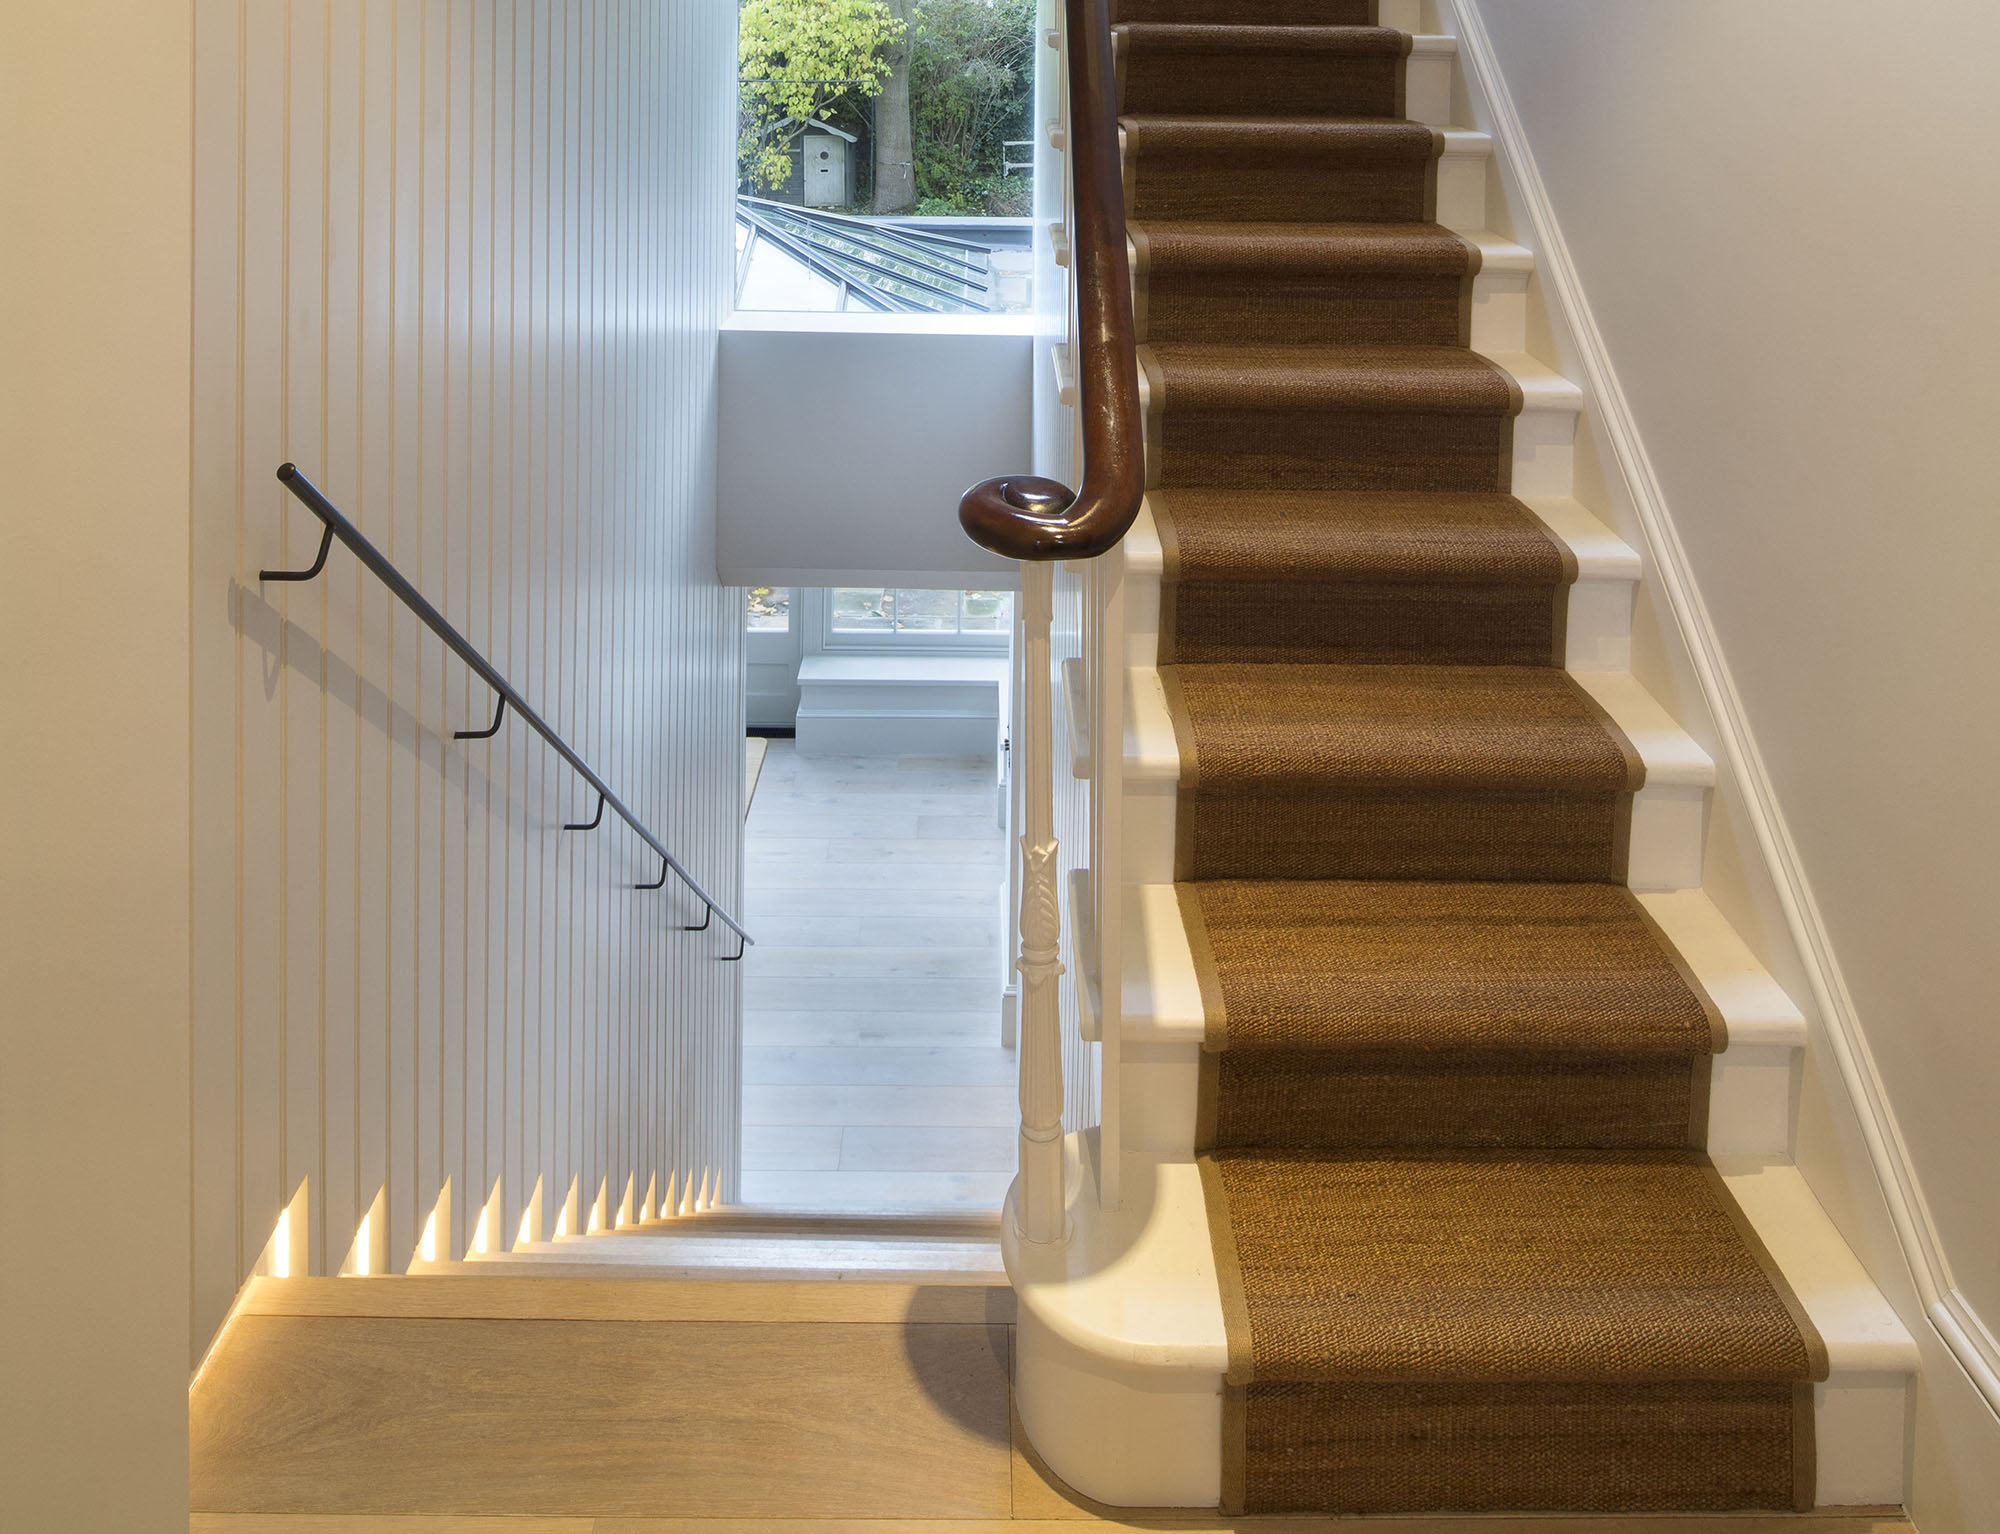 A curved banister and ornate balustrades are the stars of the show in this two-tone hallway. Image: Cousins and Cousins